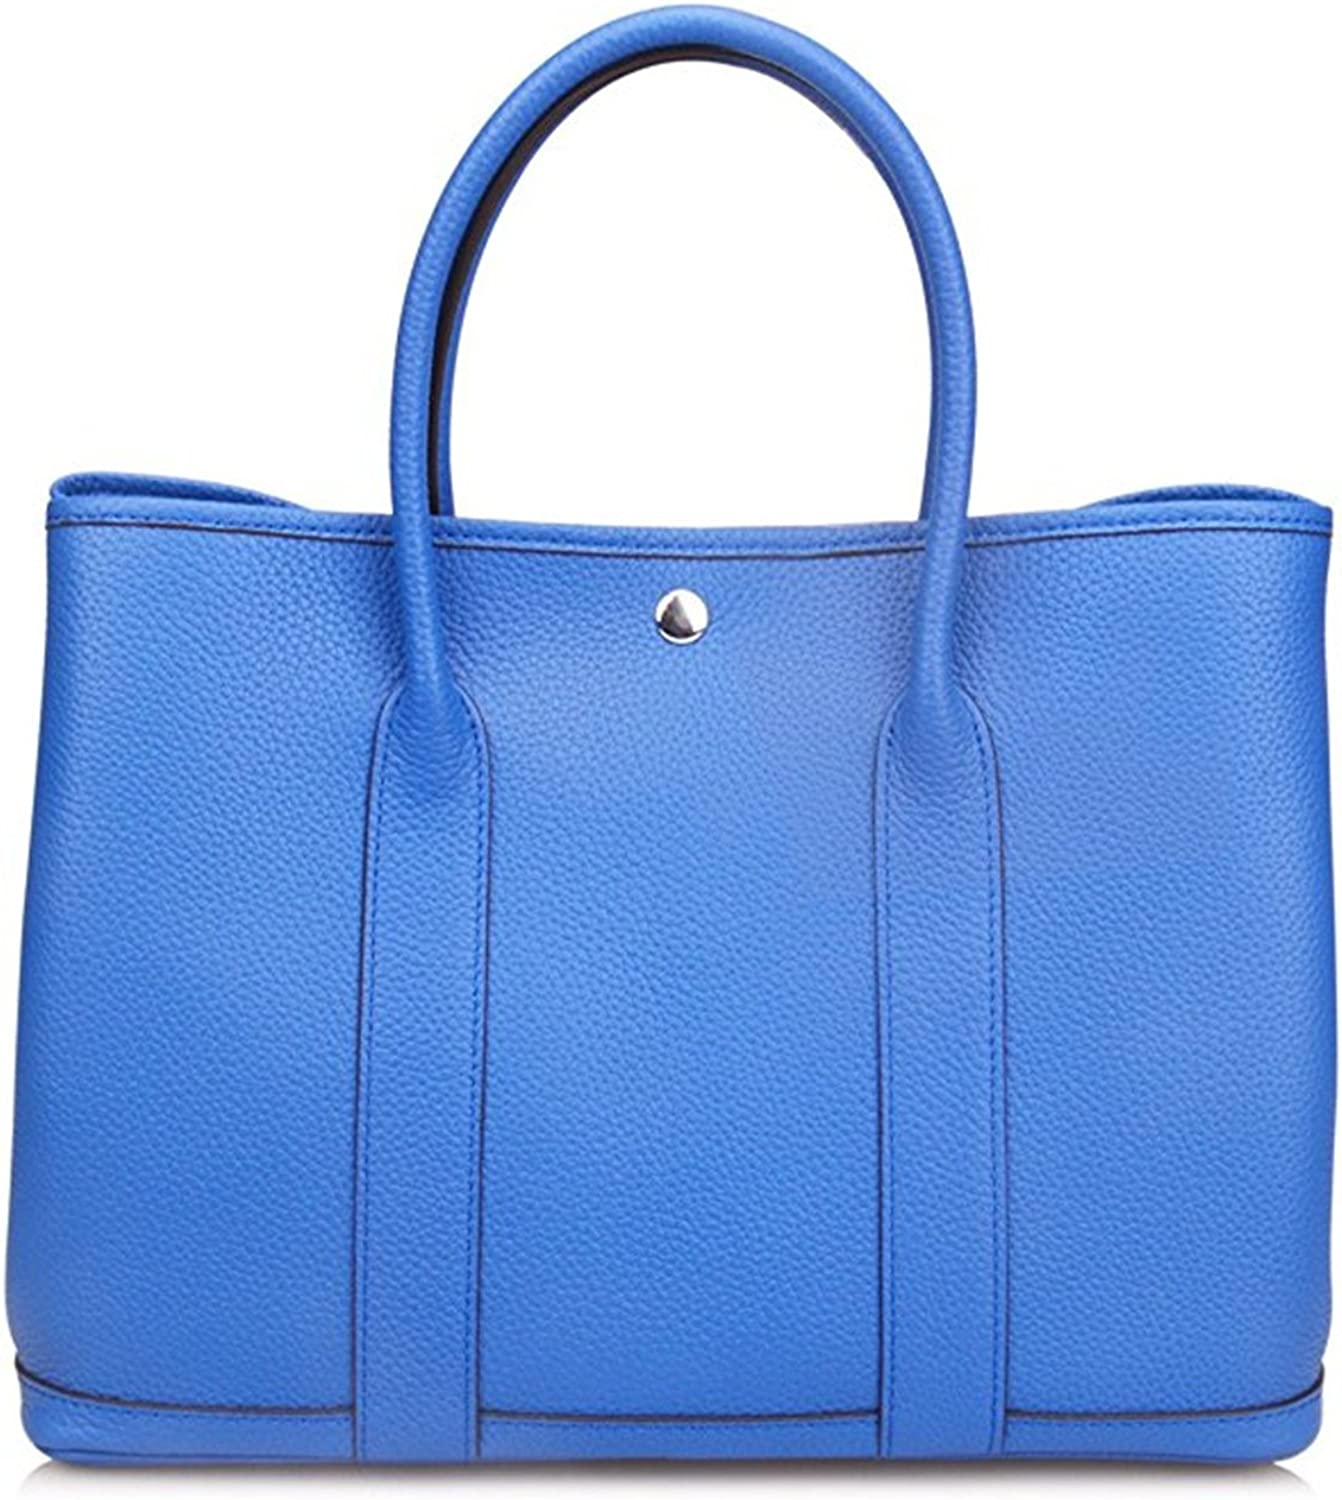 Genuine Leather Tote Bag Top Handle Handbags Light Electric bluee